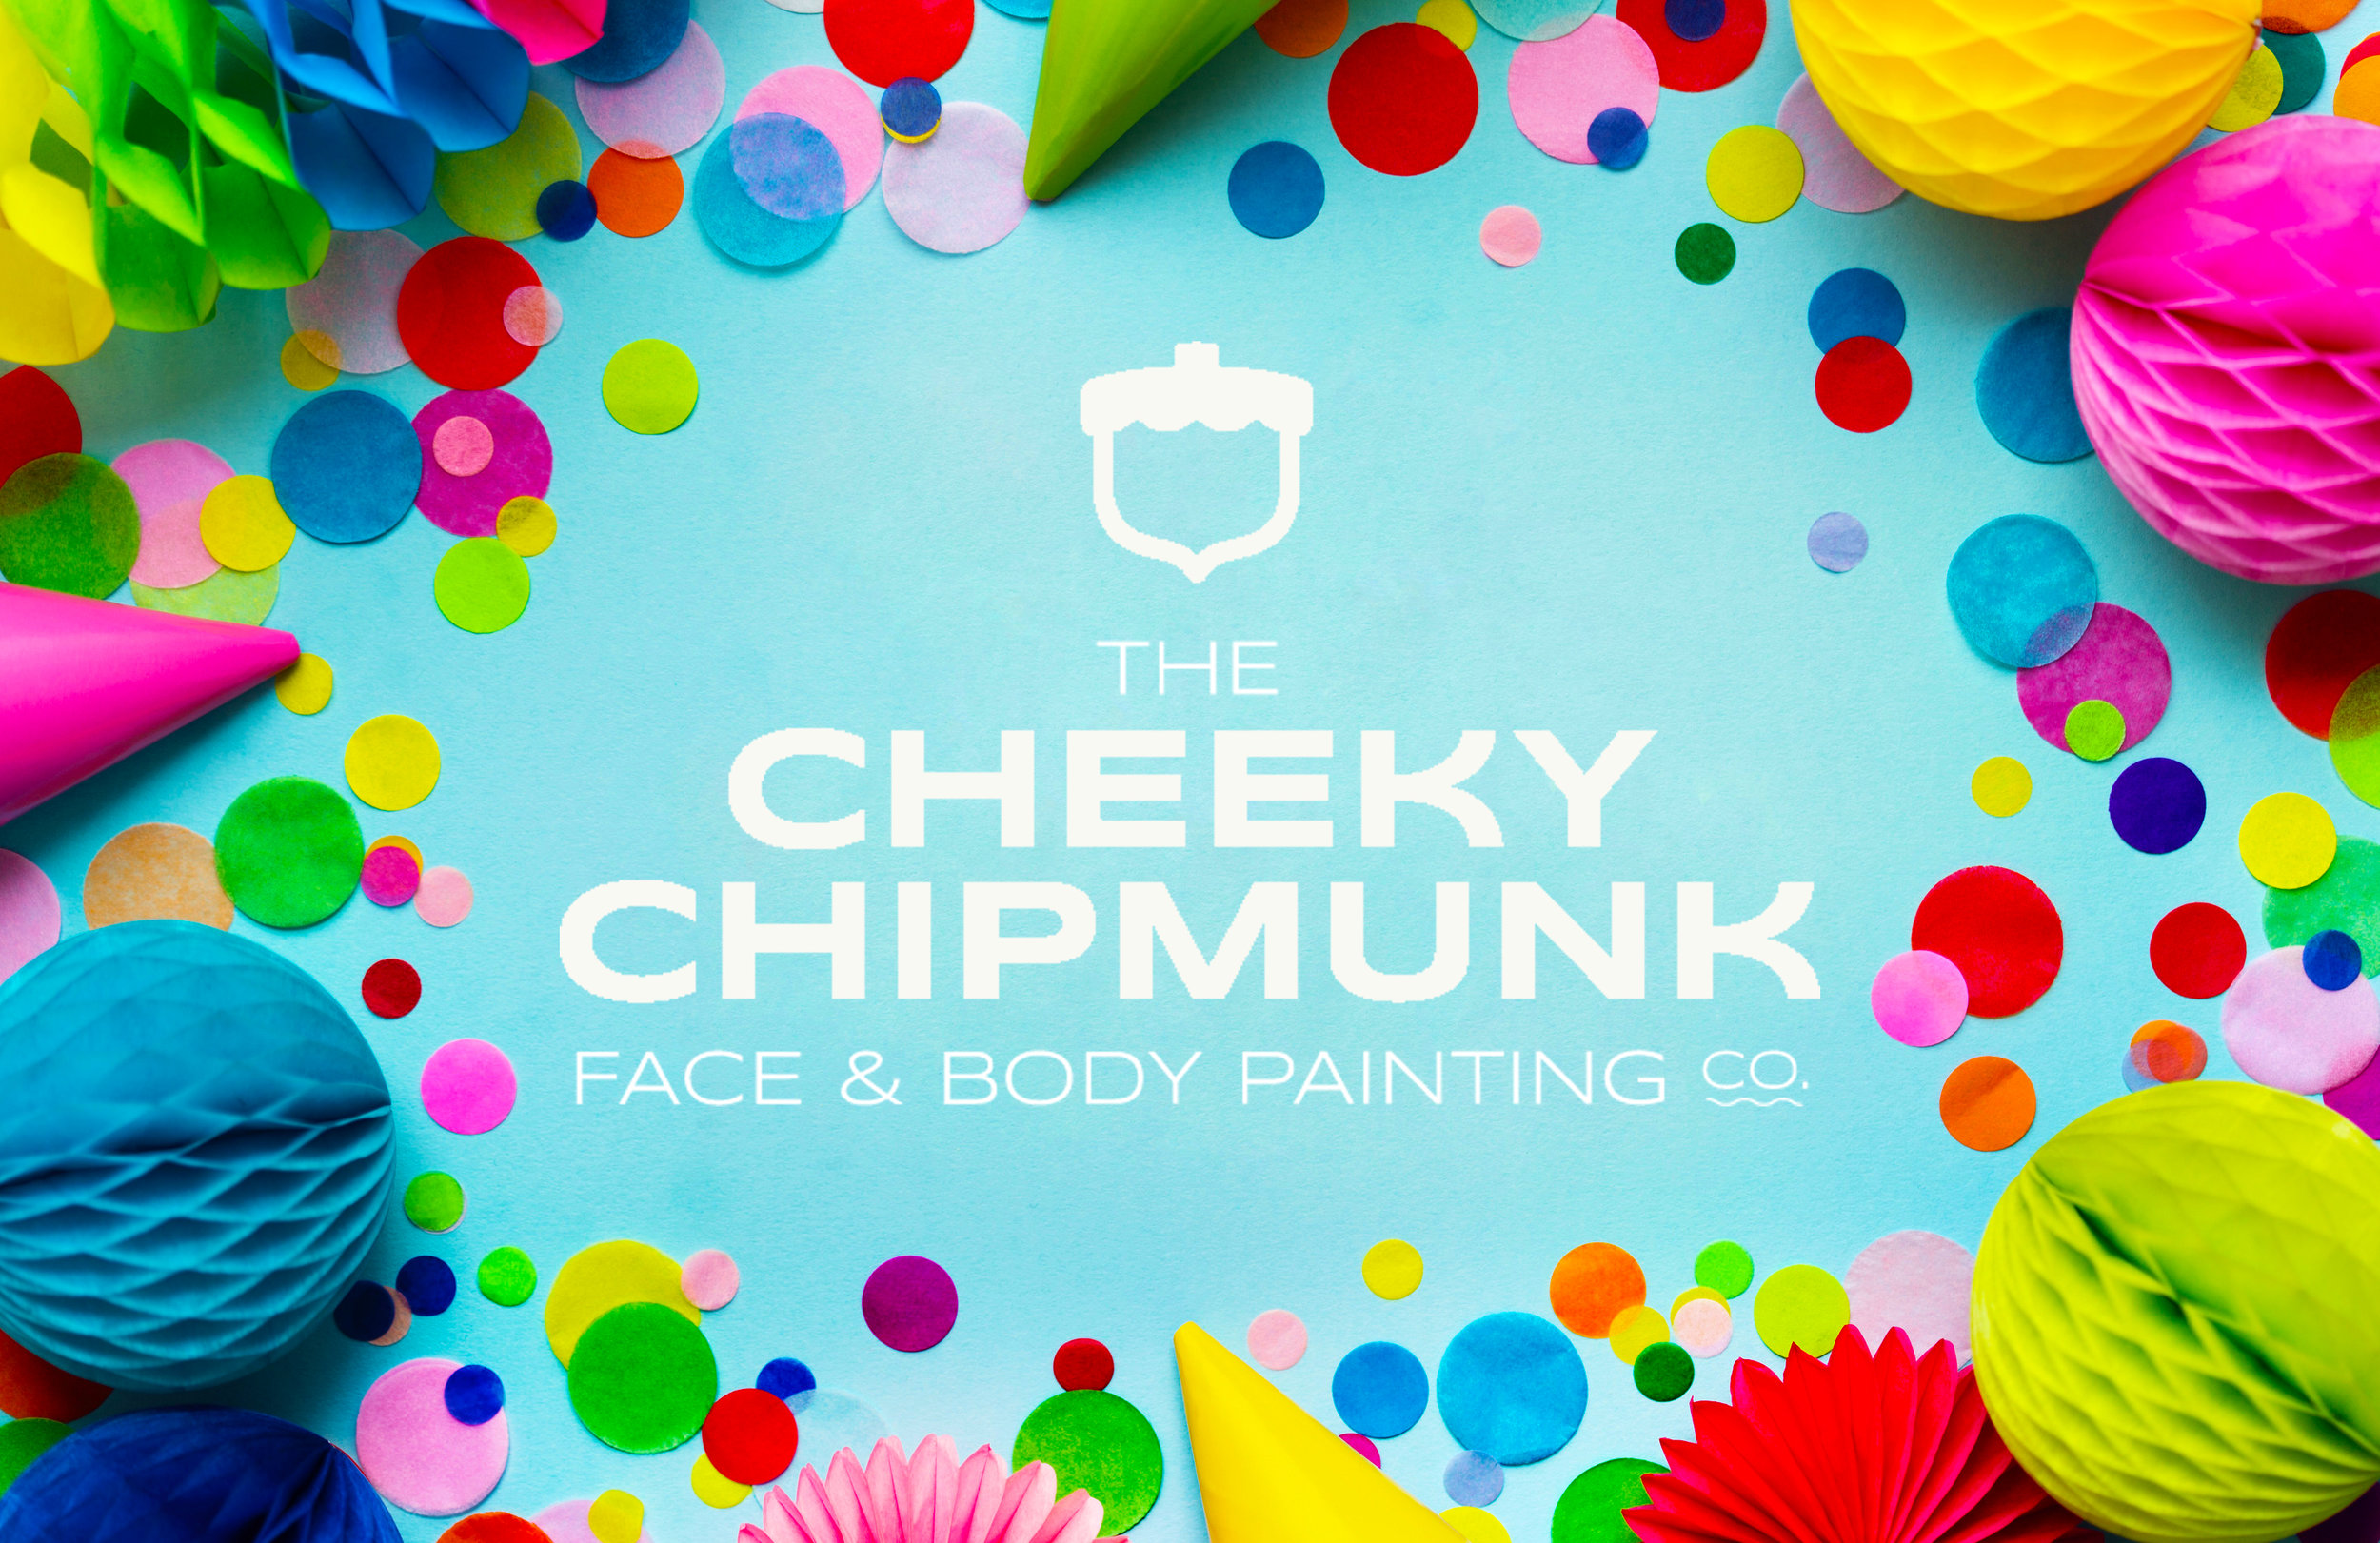 lenore-koppelman-the-cheeky-chipmunk-logo-on-blue-party-background-confetti